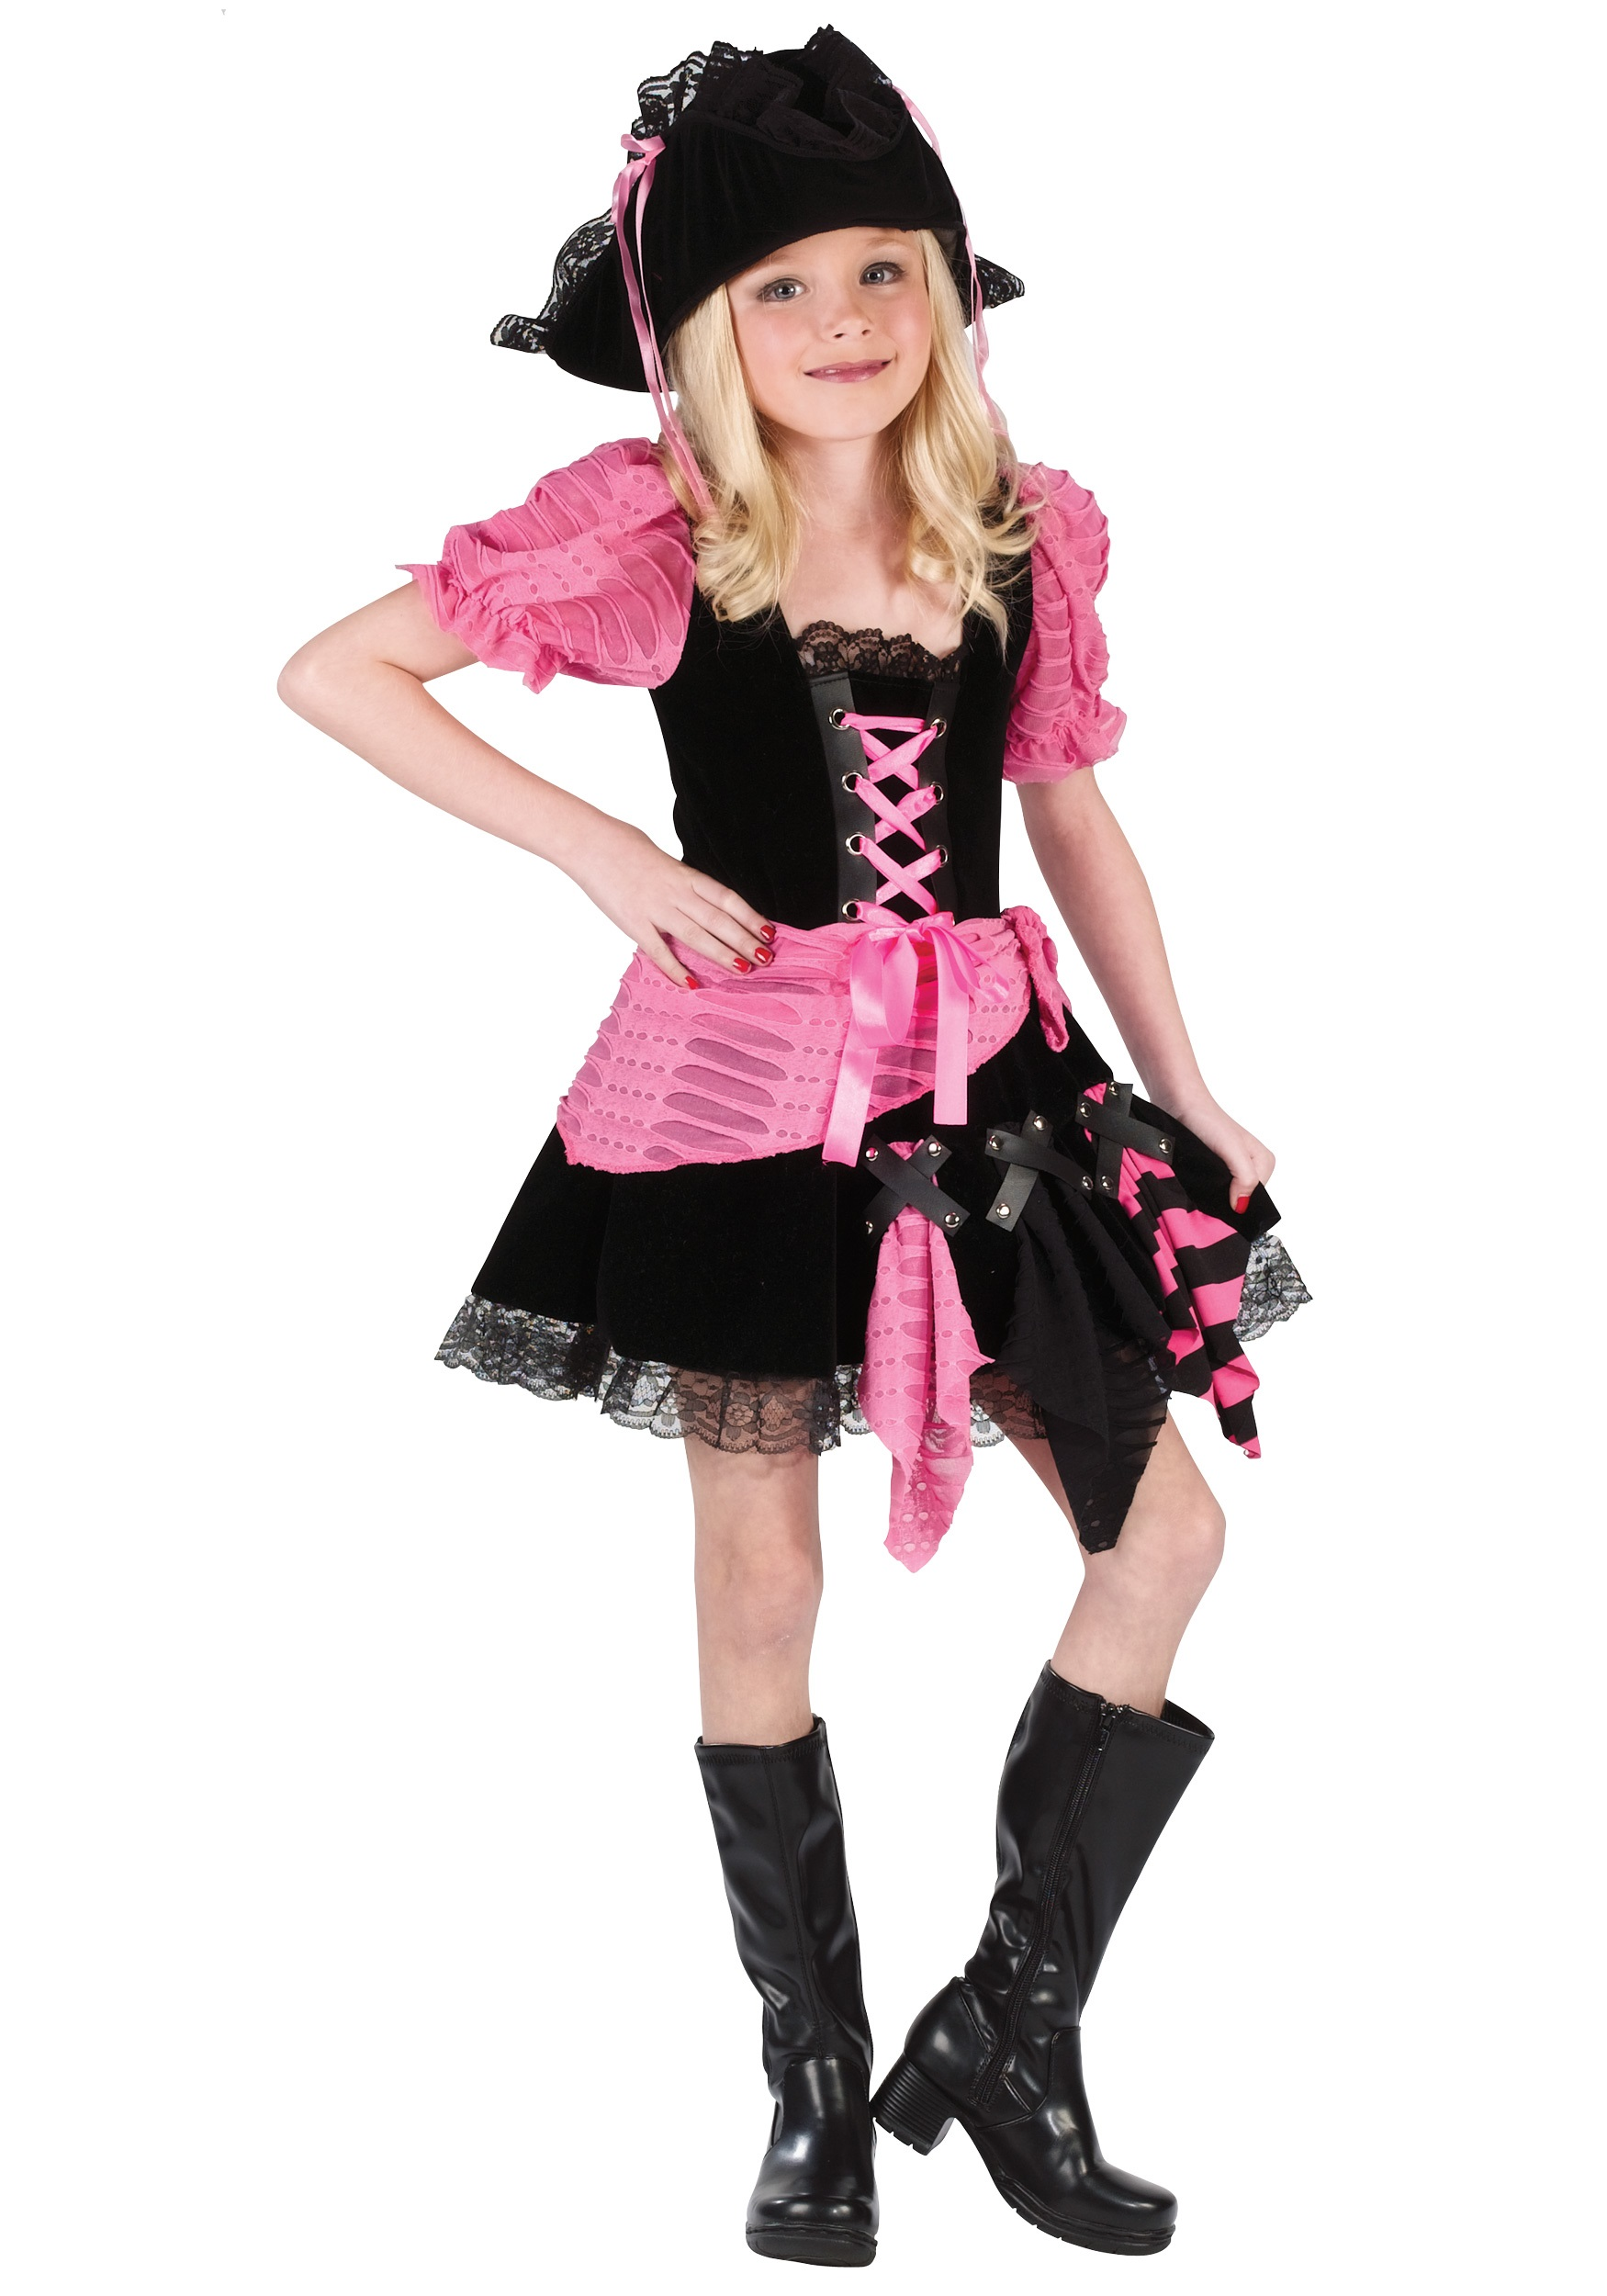 Kidu0027s Pink Pirate Costume  sc 1 st  Halloween Costumes & Kidu0027s Pink Pirate Costume - Child Pirate Costumes Girl